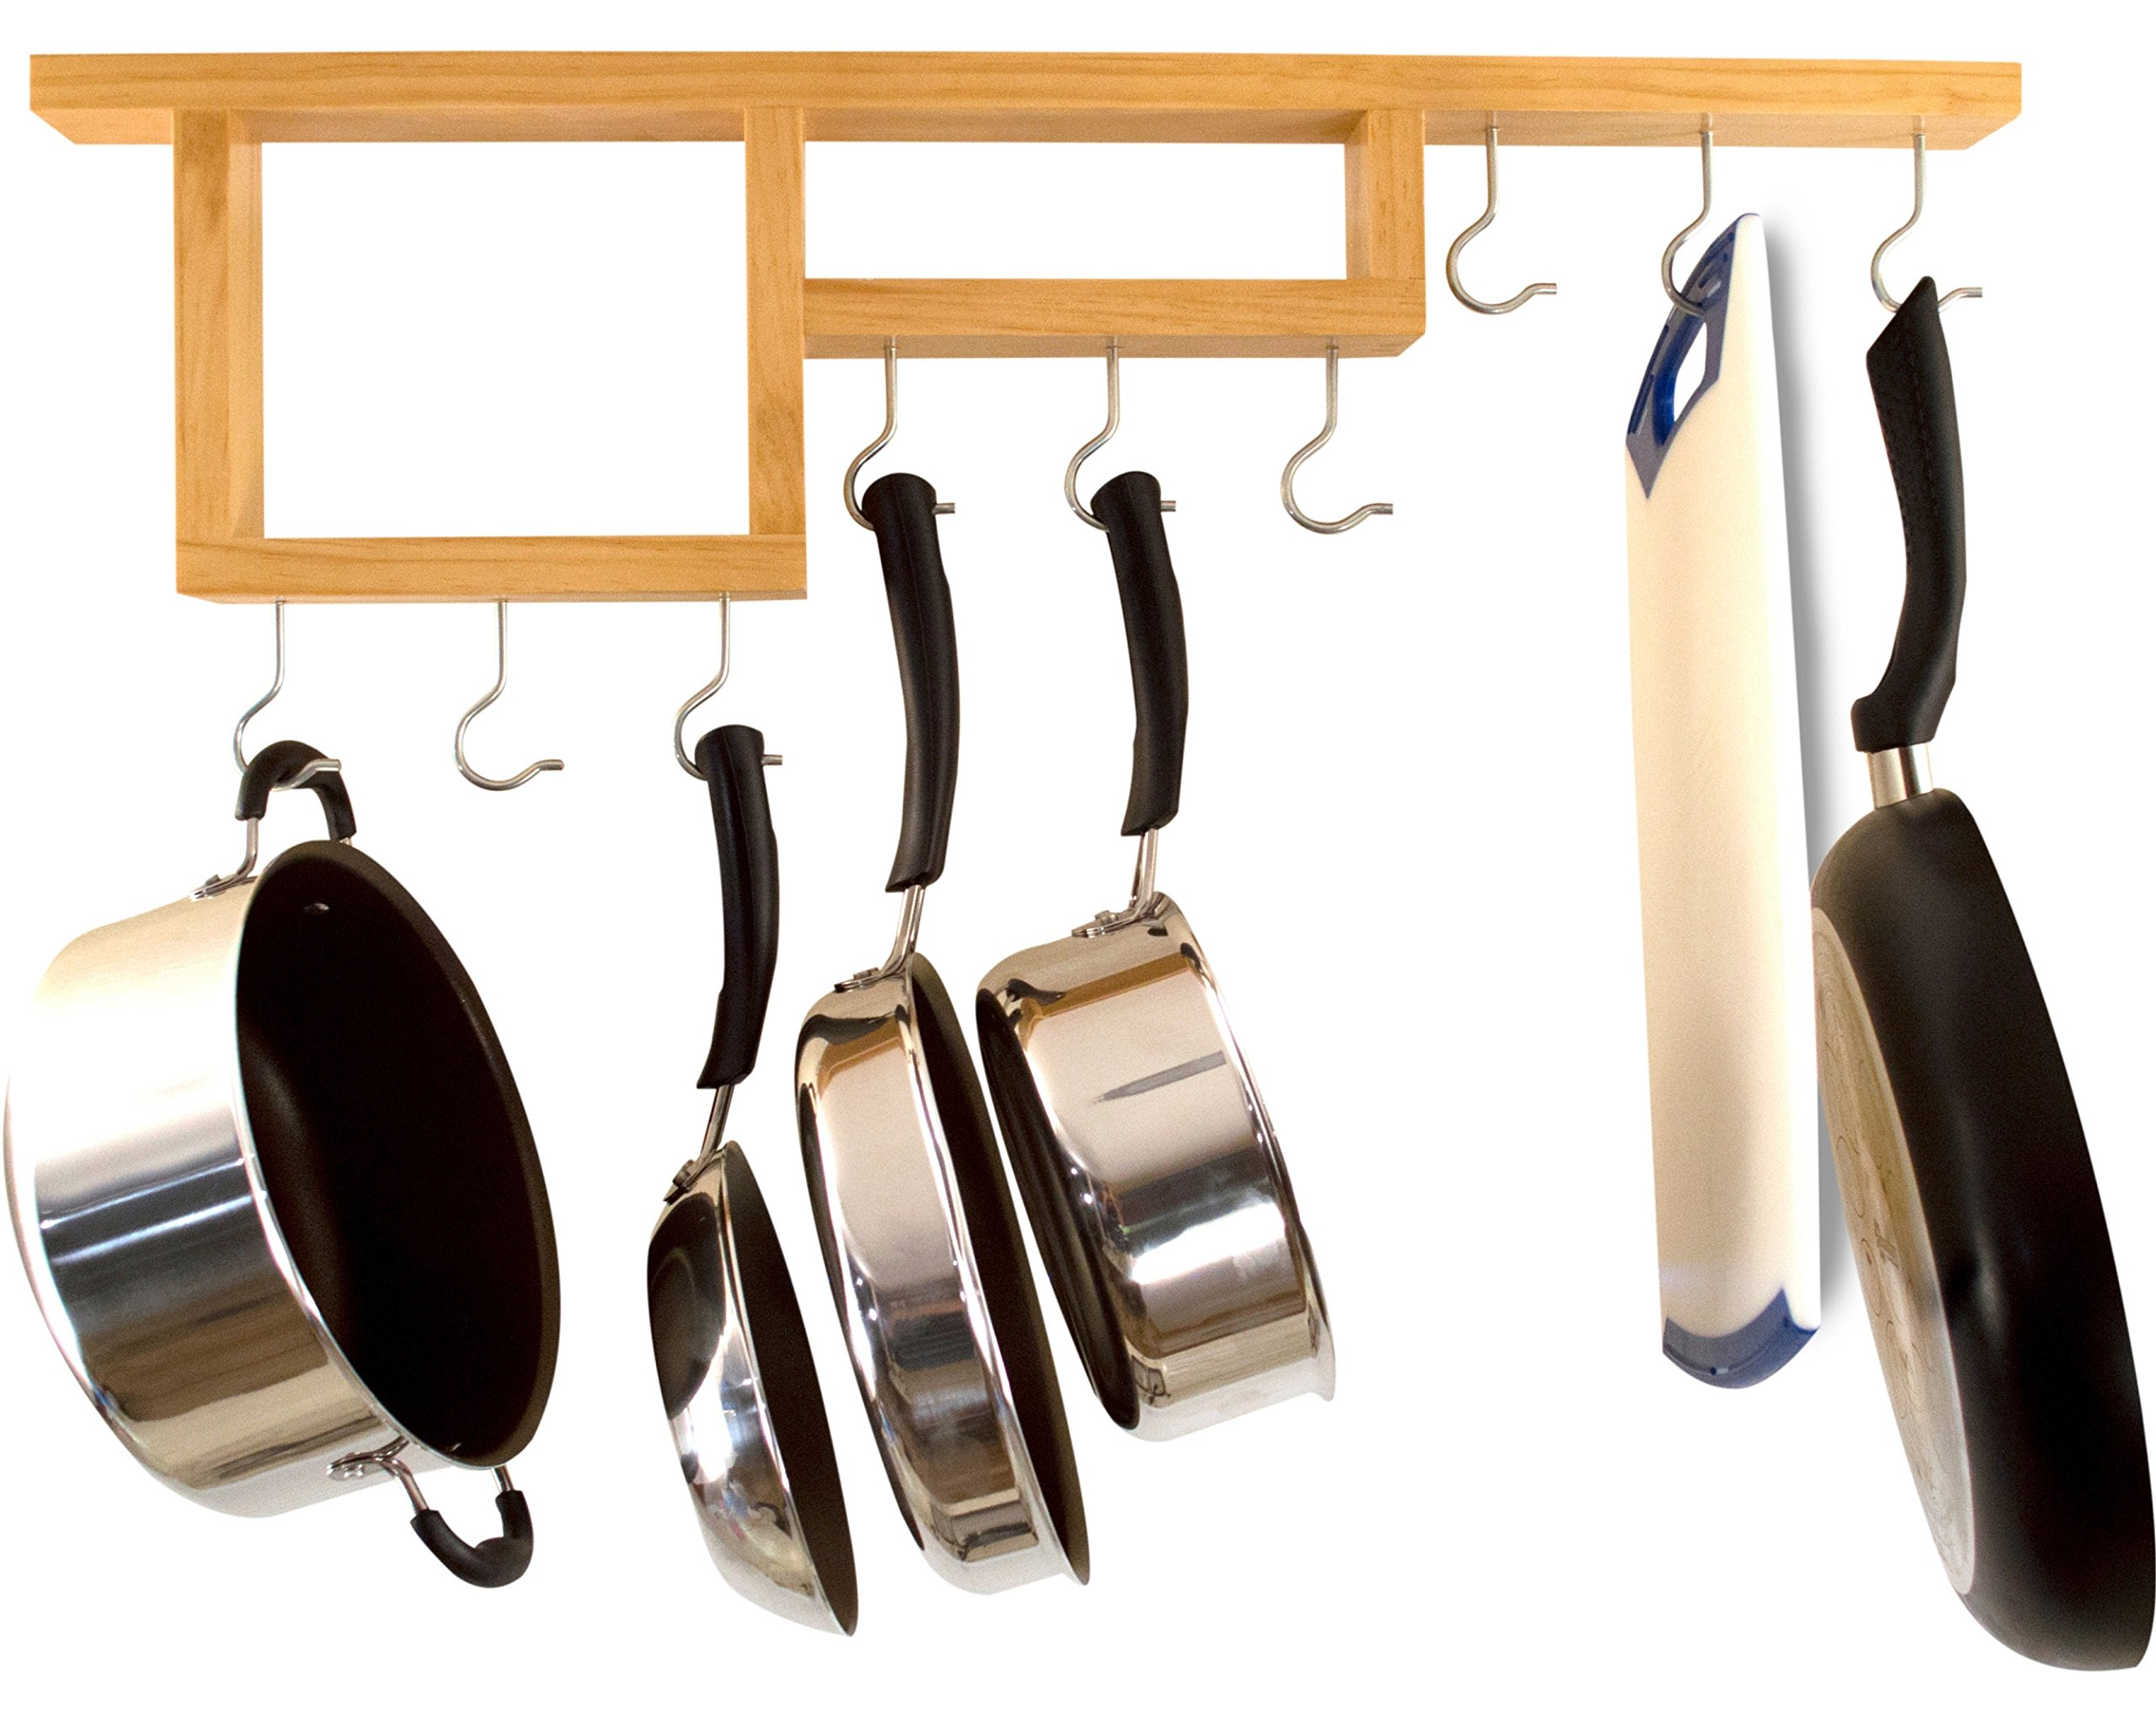 Pot Rack: Easy to Reach Ceiling Mount Solid-Wood Pan Hanger by HomeHarmony by HomeHarmony